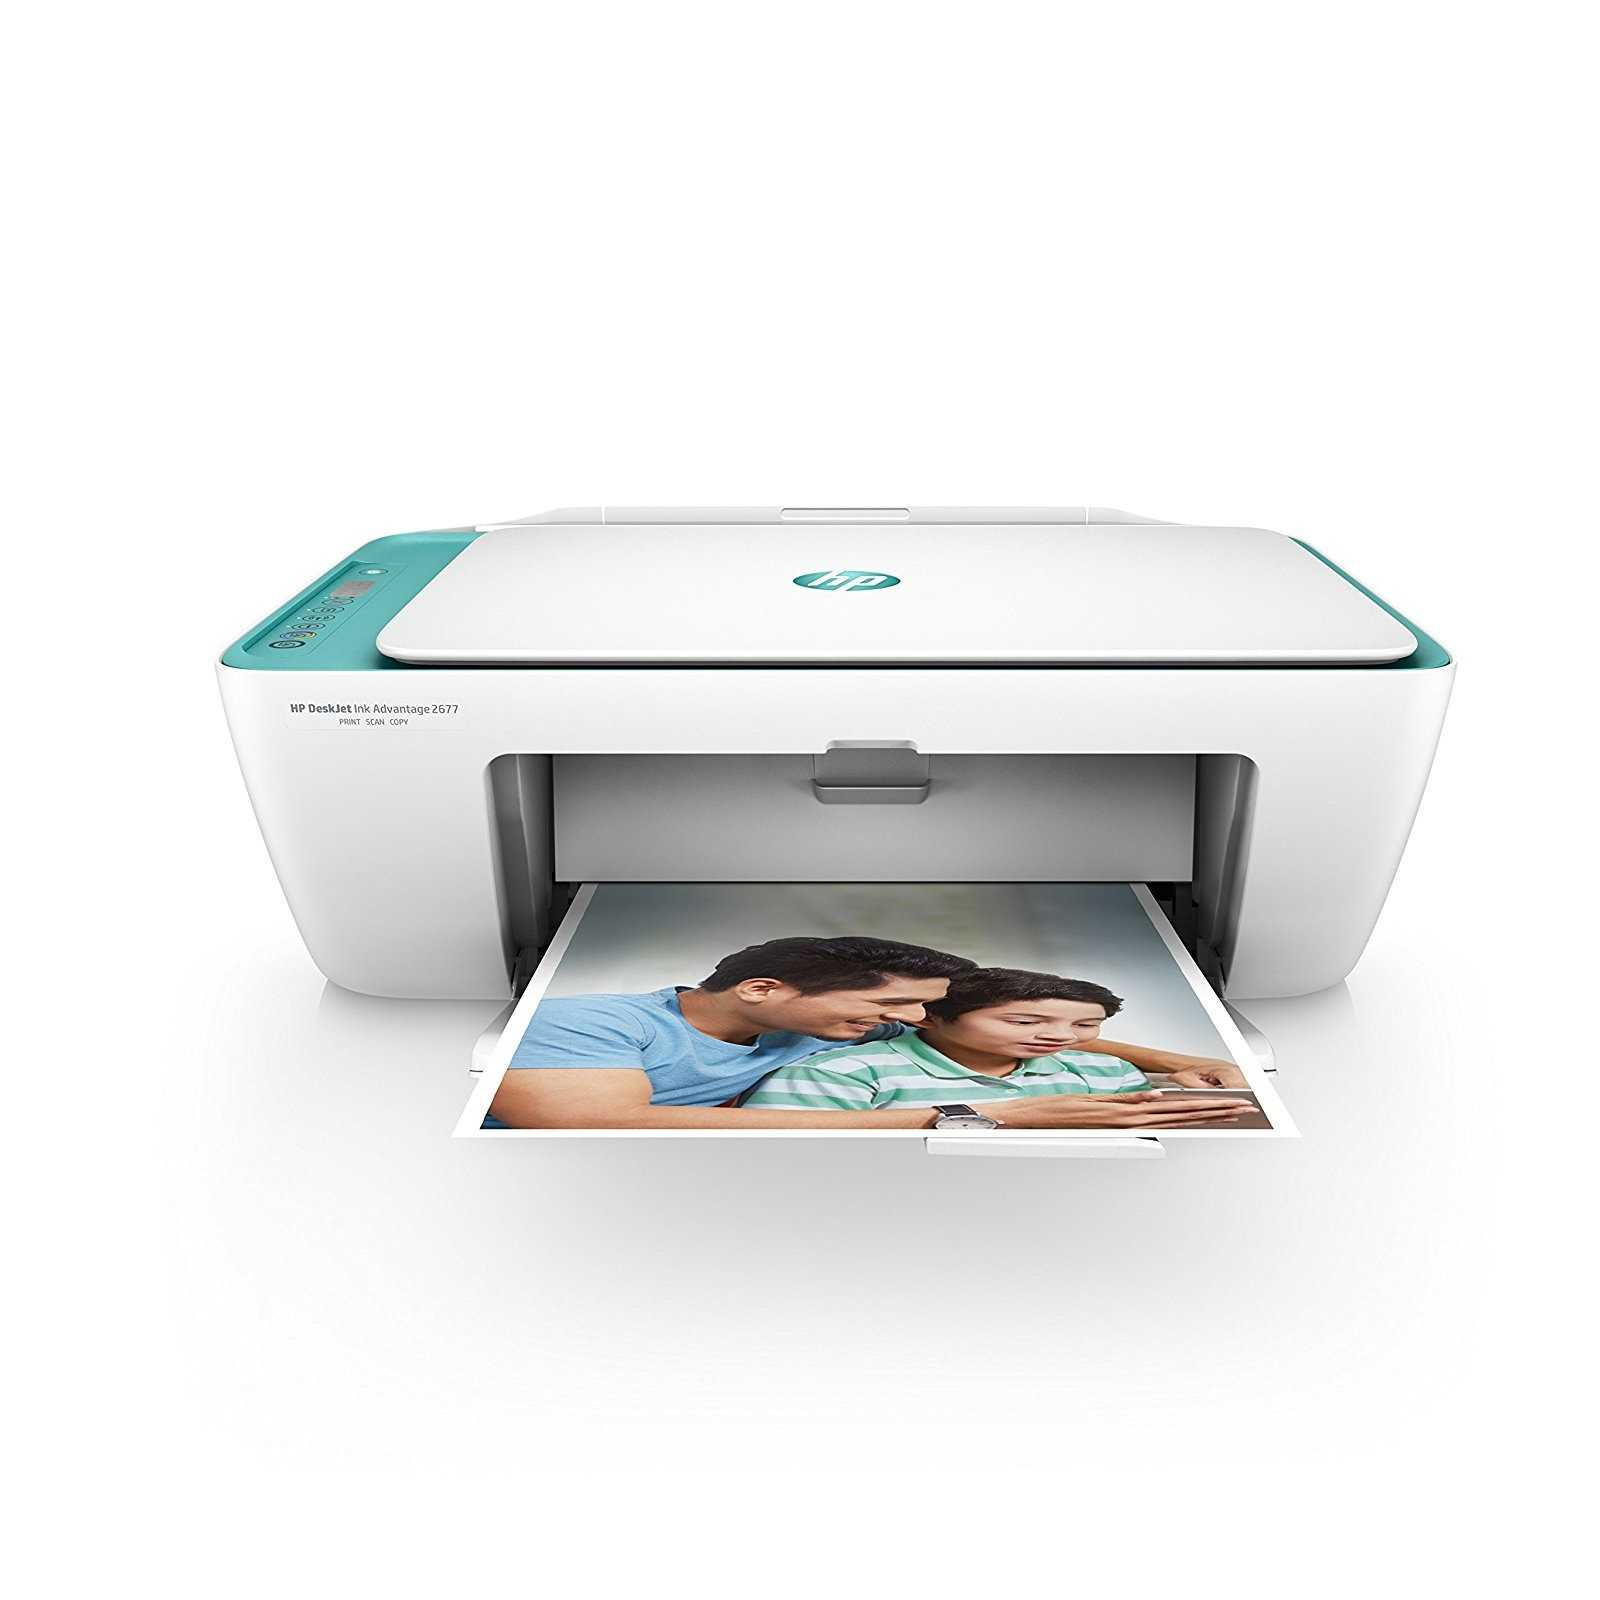 HP DeskJet Ink Advantage 2677 Inkjet Multifunction Printer